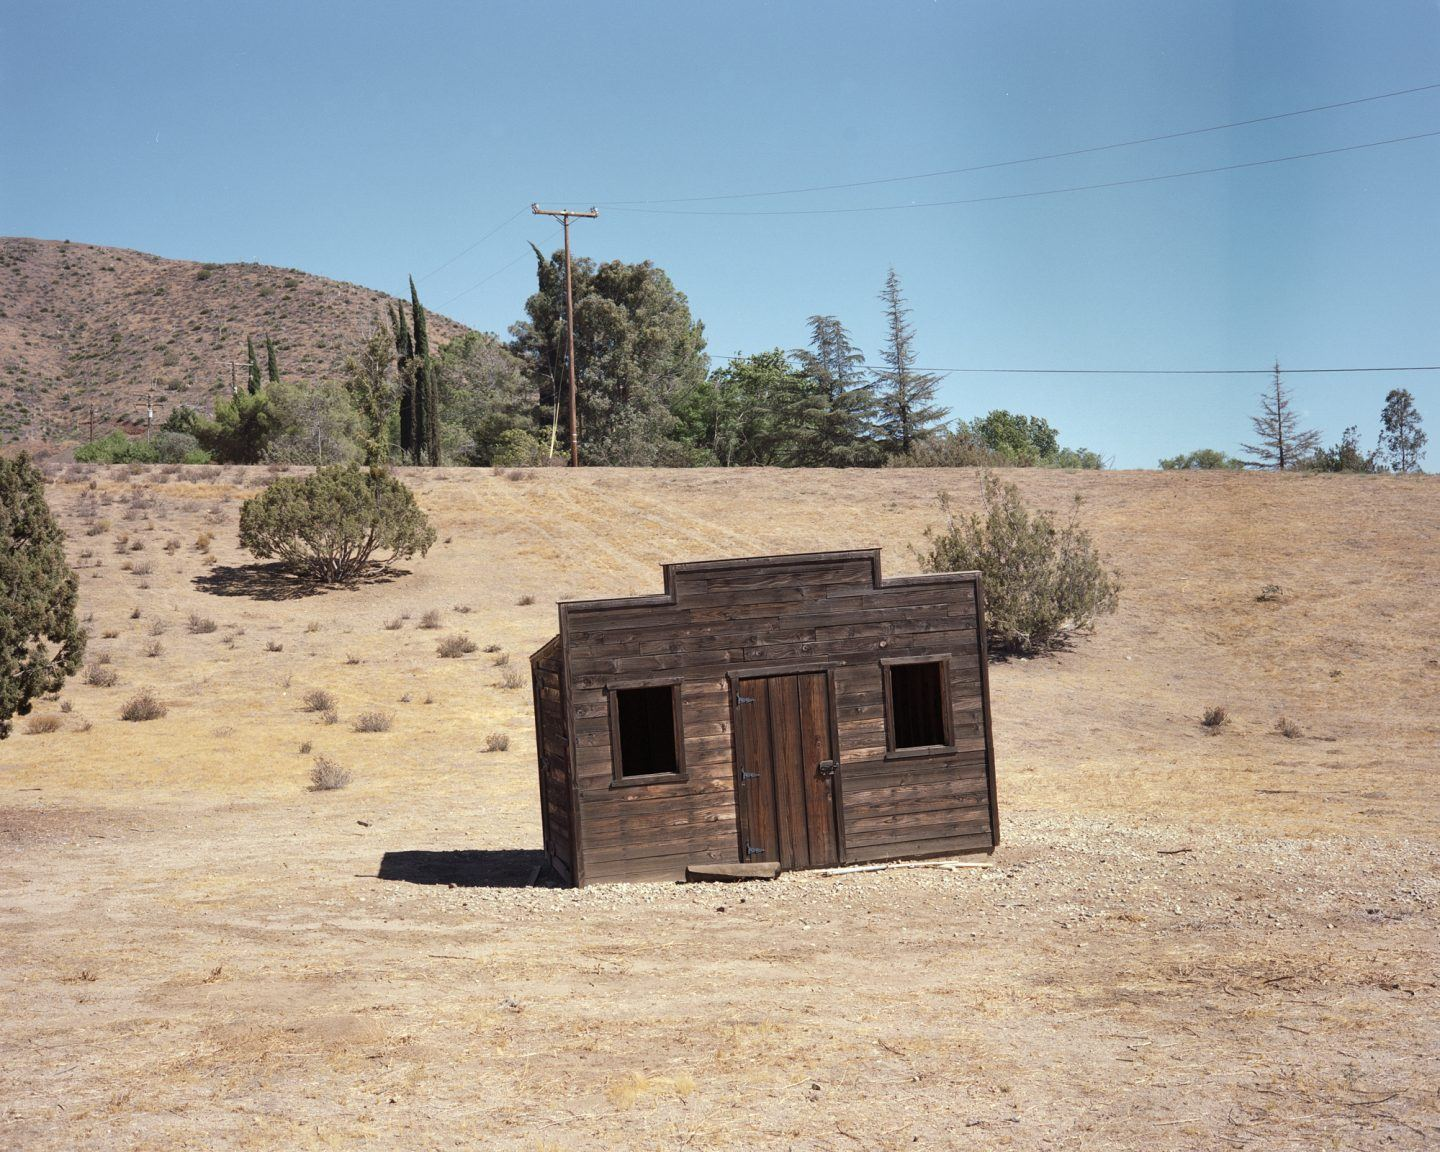 IGNANT-Photography-Clement-Chapillon-Meet-California-020